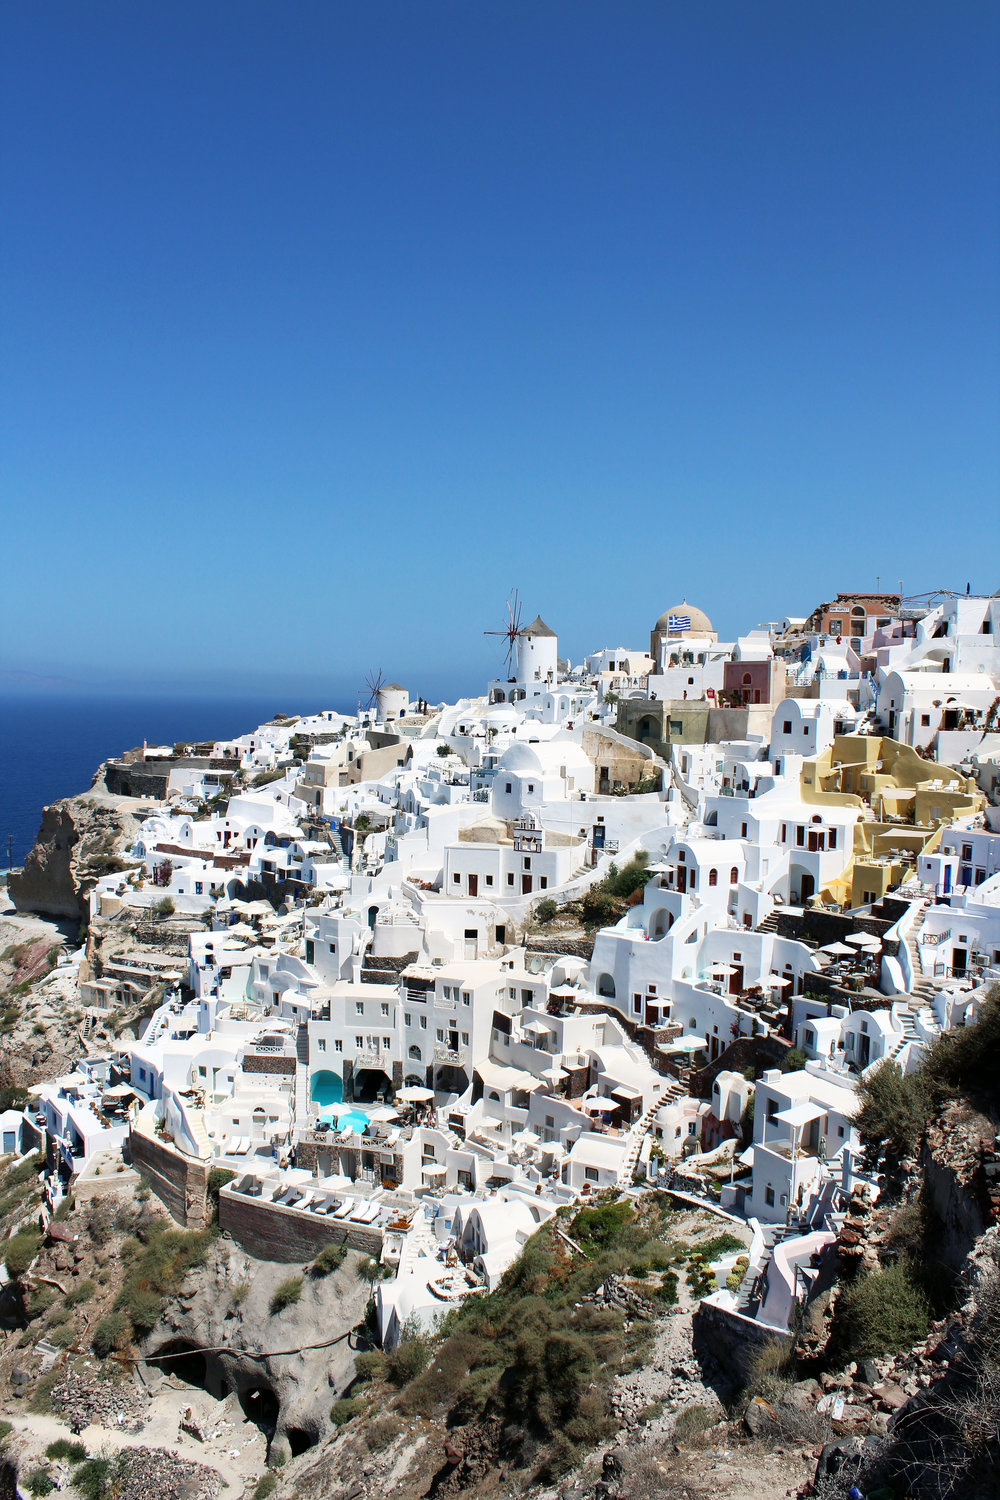 fun fact - There is a reason for an abundance of white and blue exteriors...not only representing the colors of the Greek flag; but white represents purity and blue symbolizes the sky and the sea.